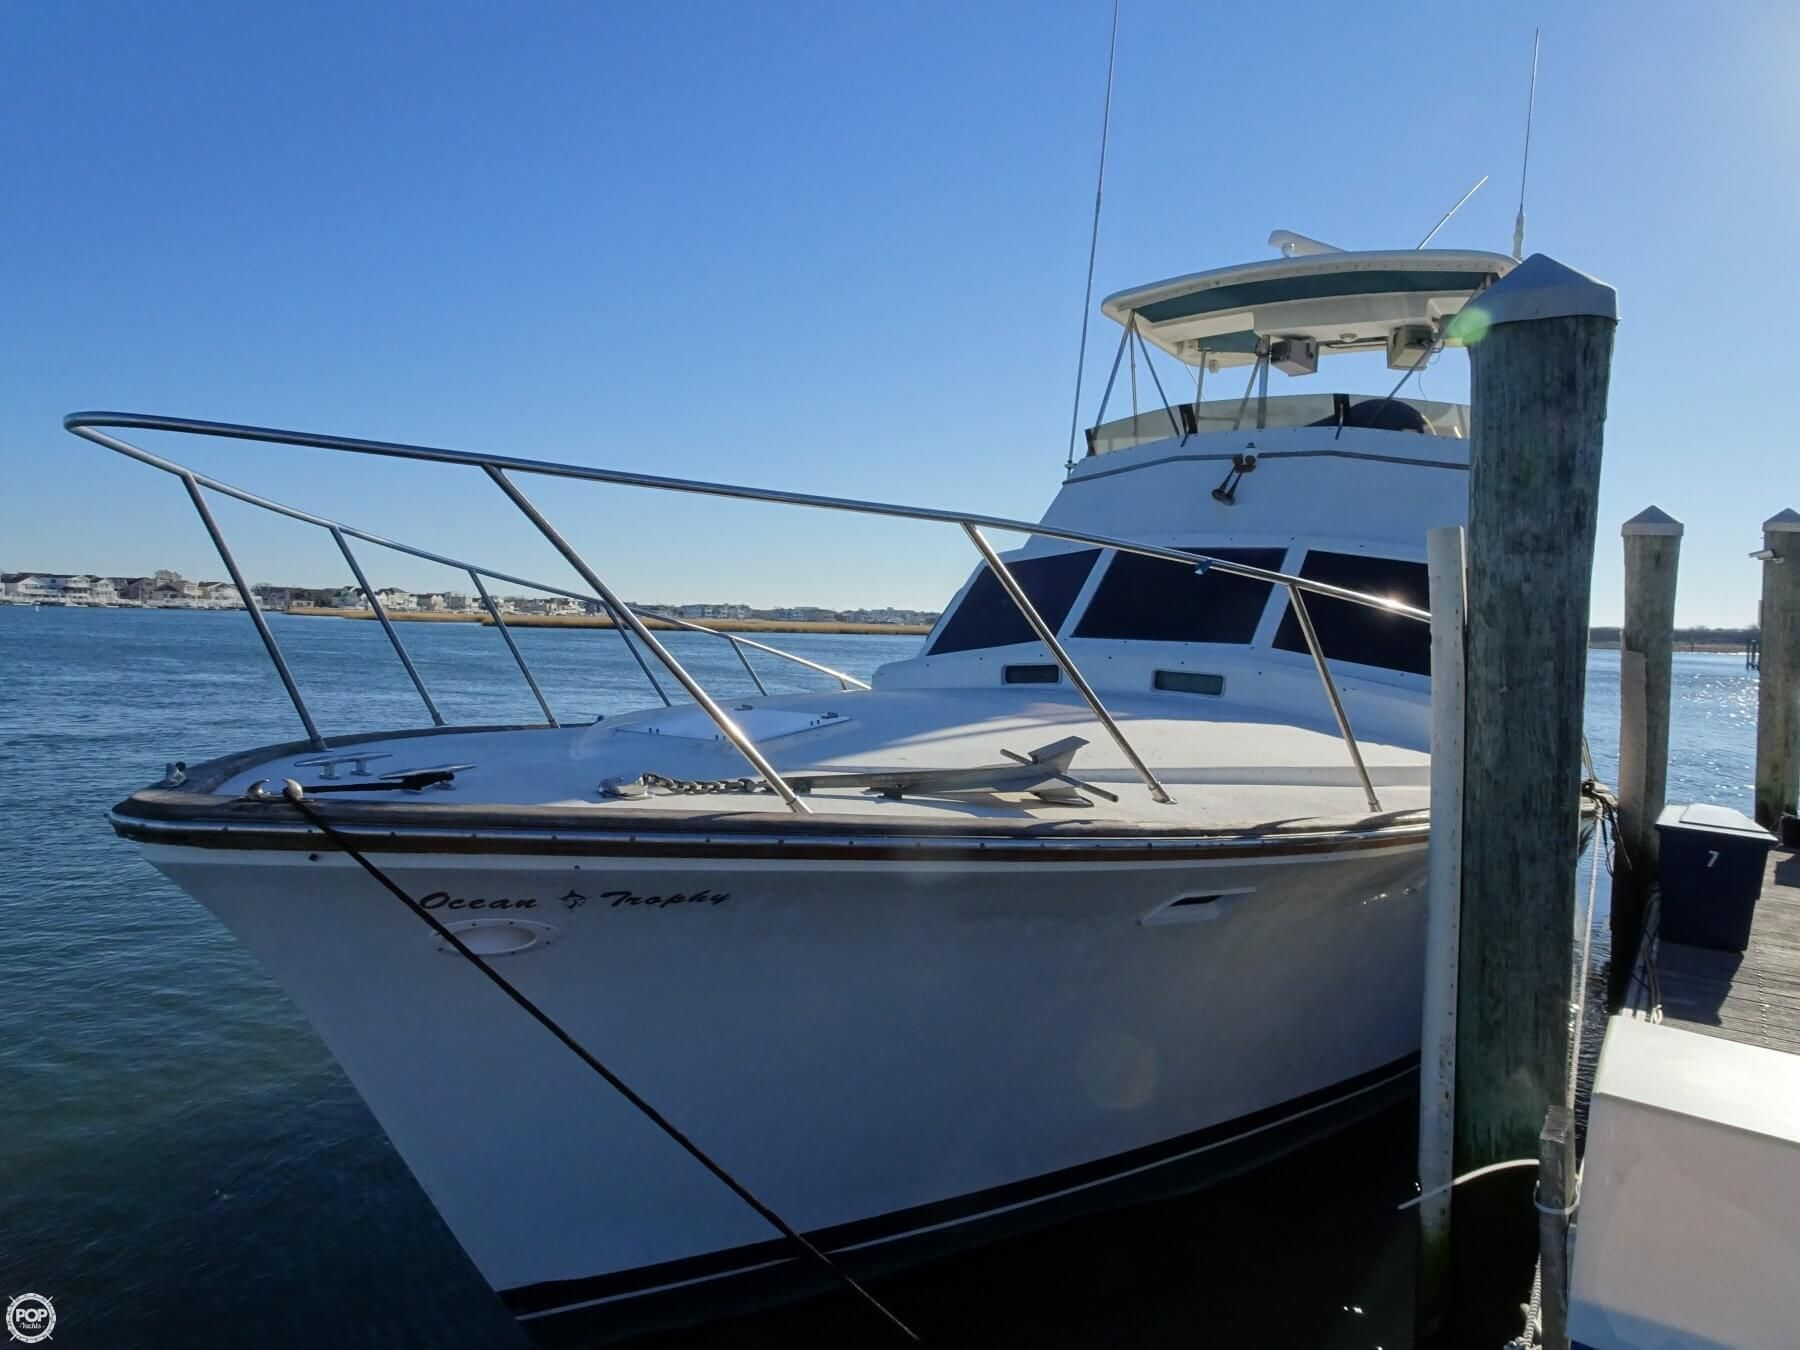 Ocean Yacht Sportfish! Great boat for fishing and luxury